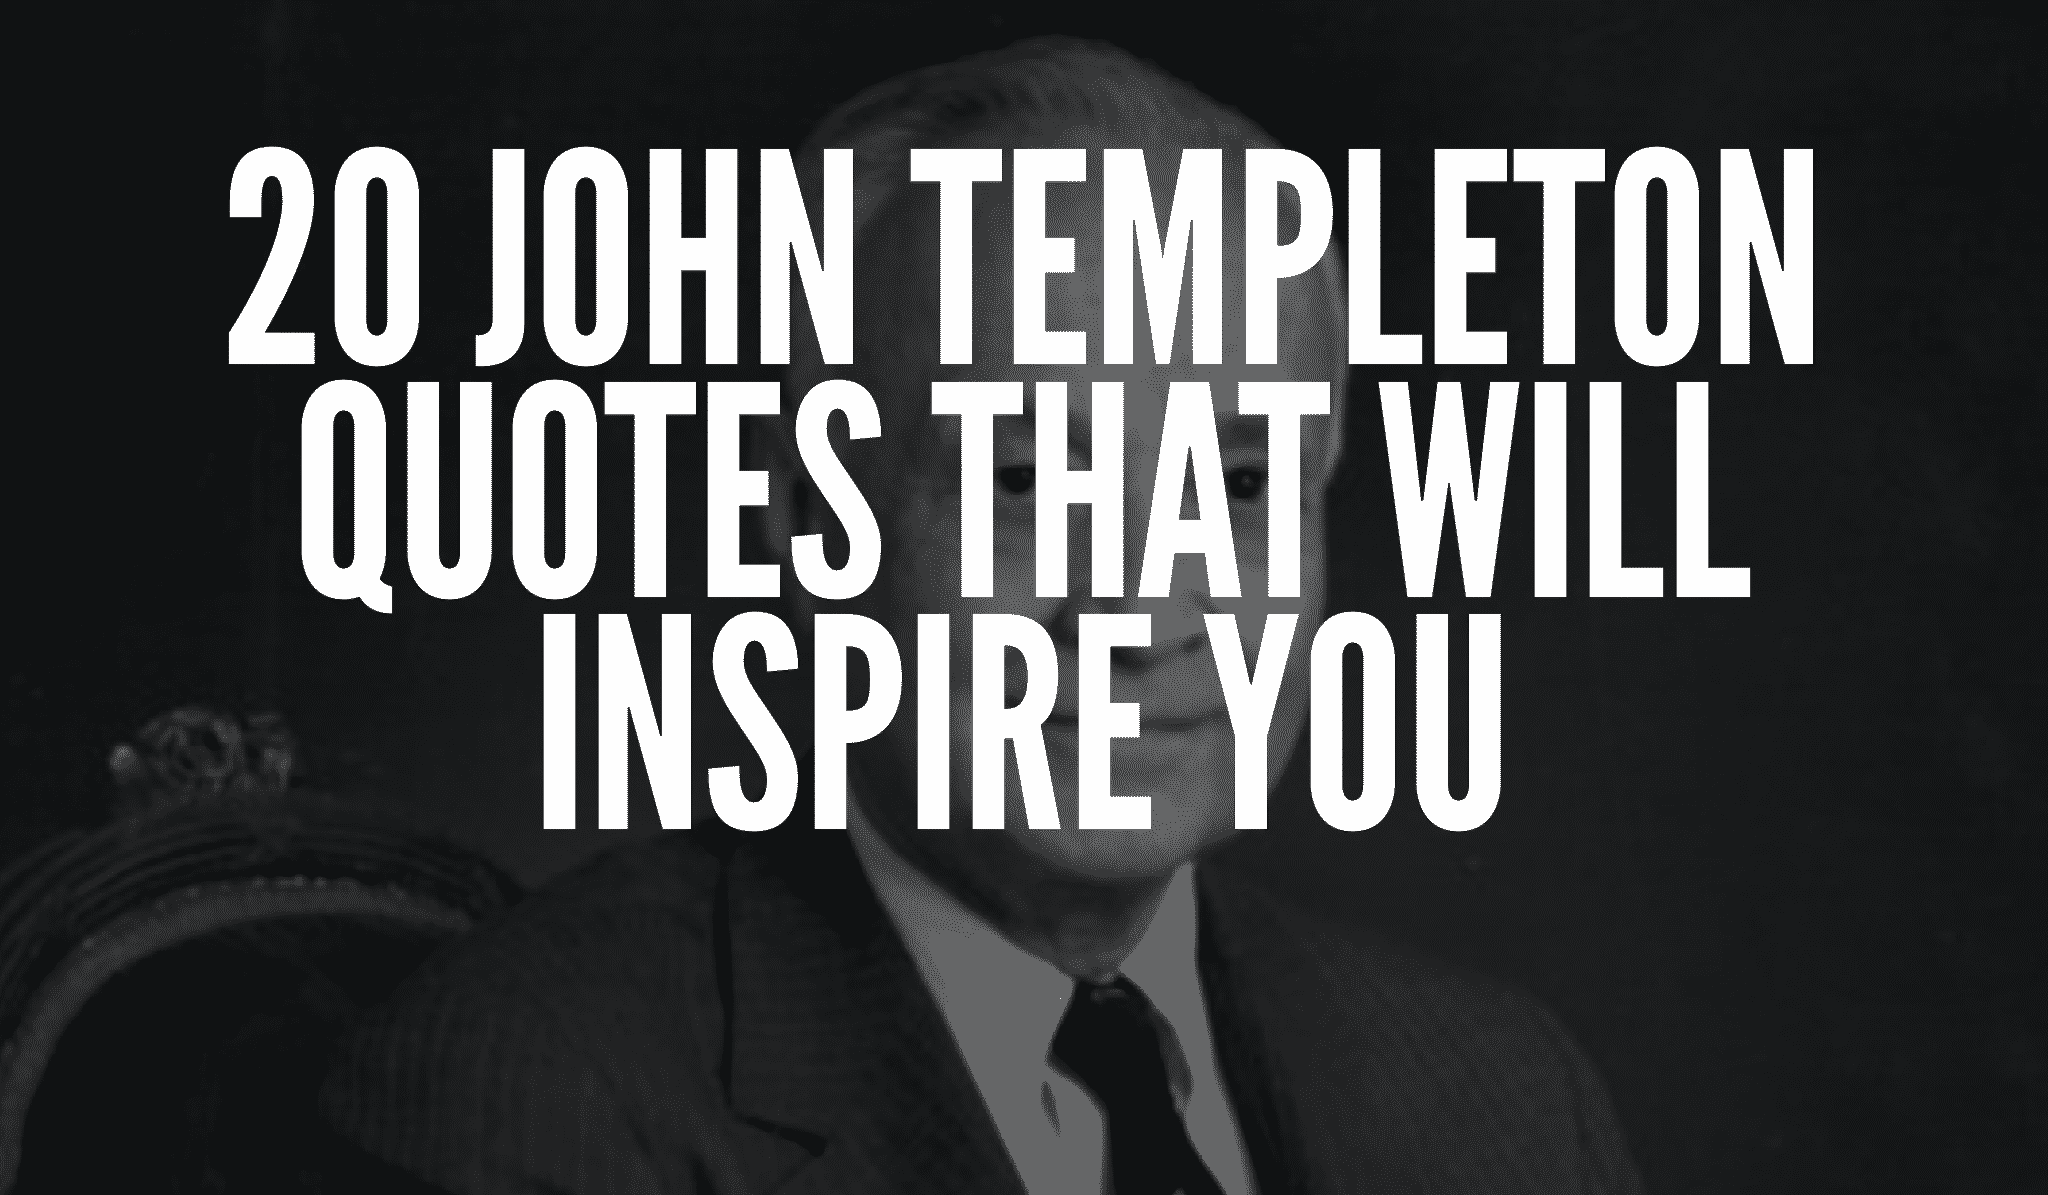 20 John Templeton Quotes That Will Inspire You